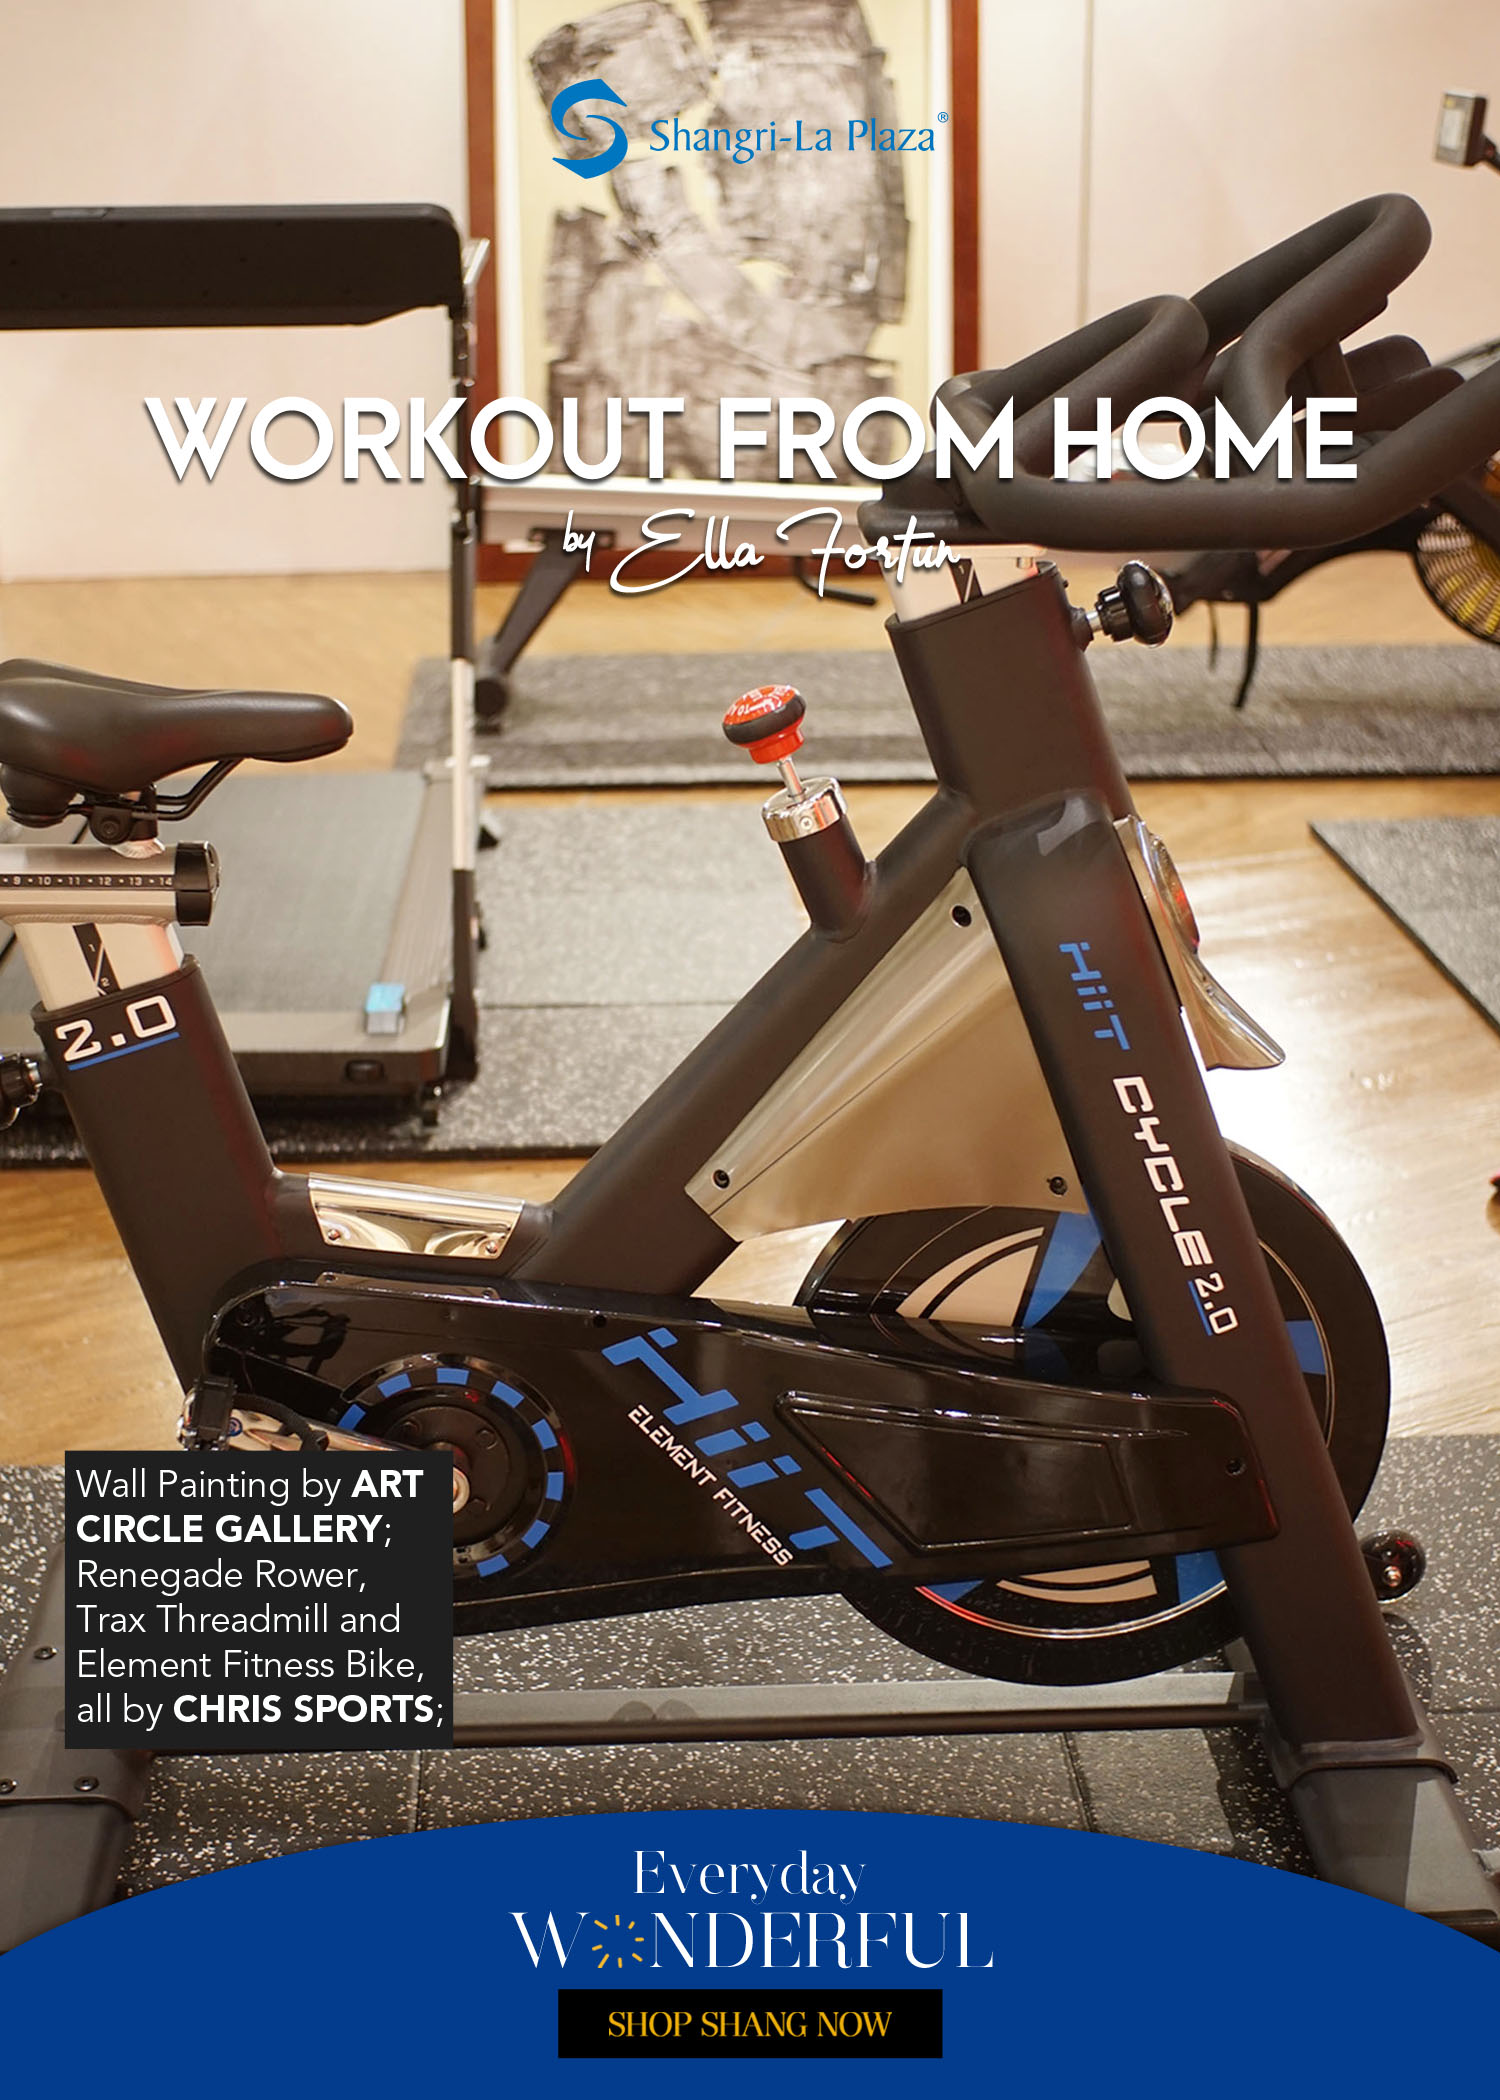 Workout from Home featured image